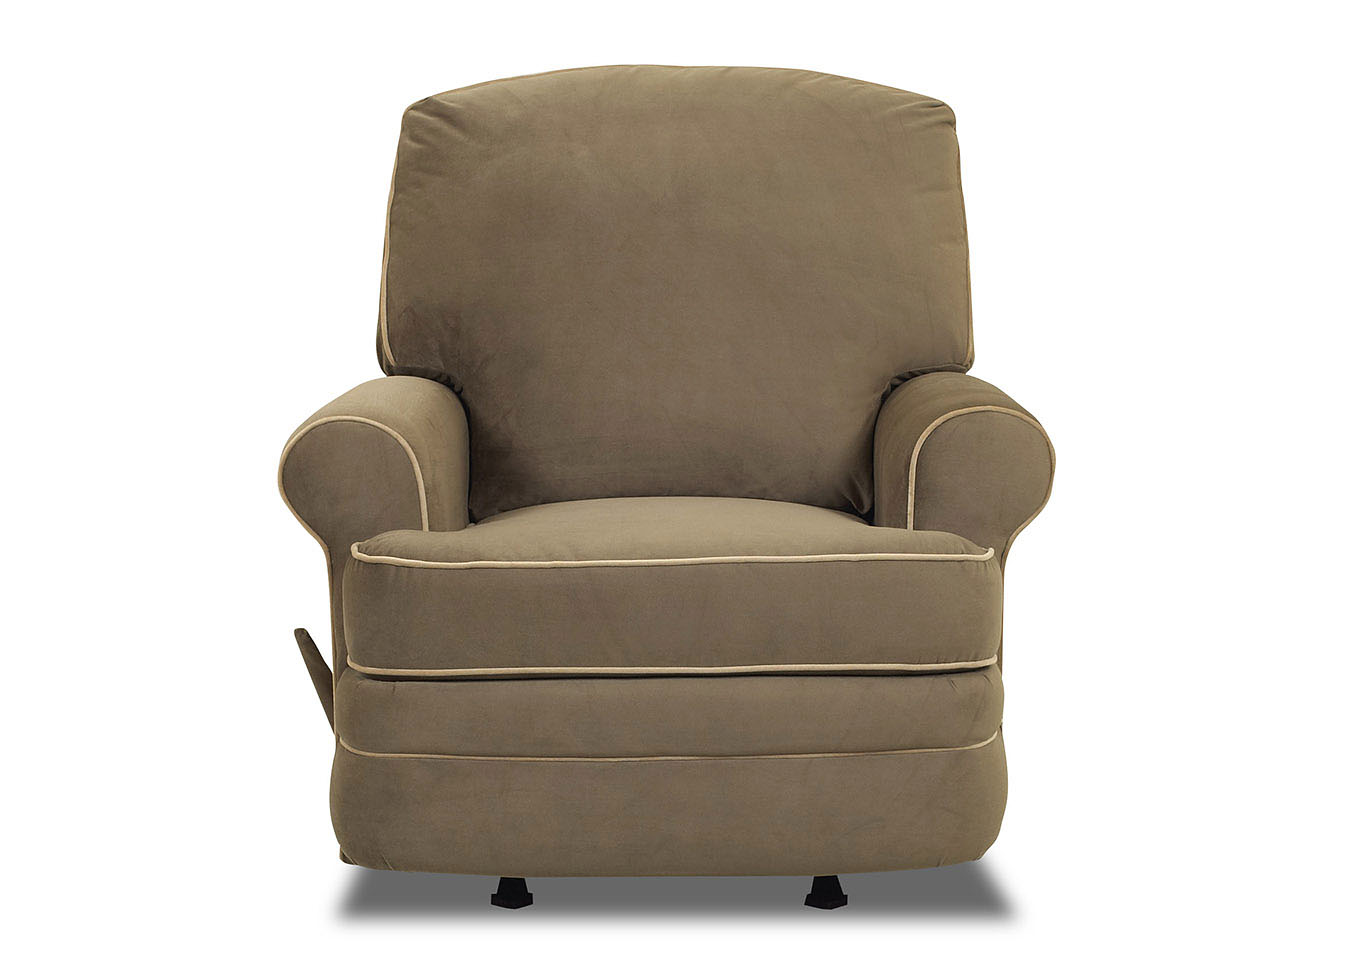 Belleview Reclining Fabric Chair,Klaussner Home Furnishings